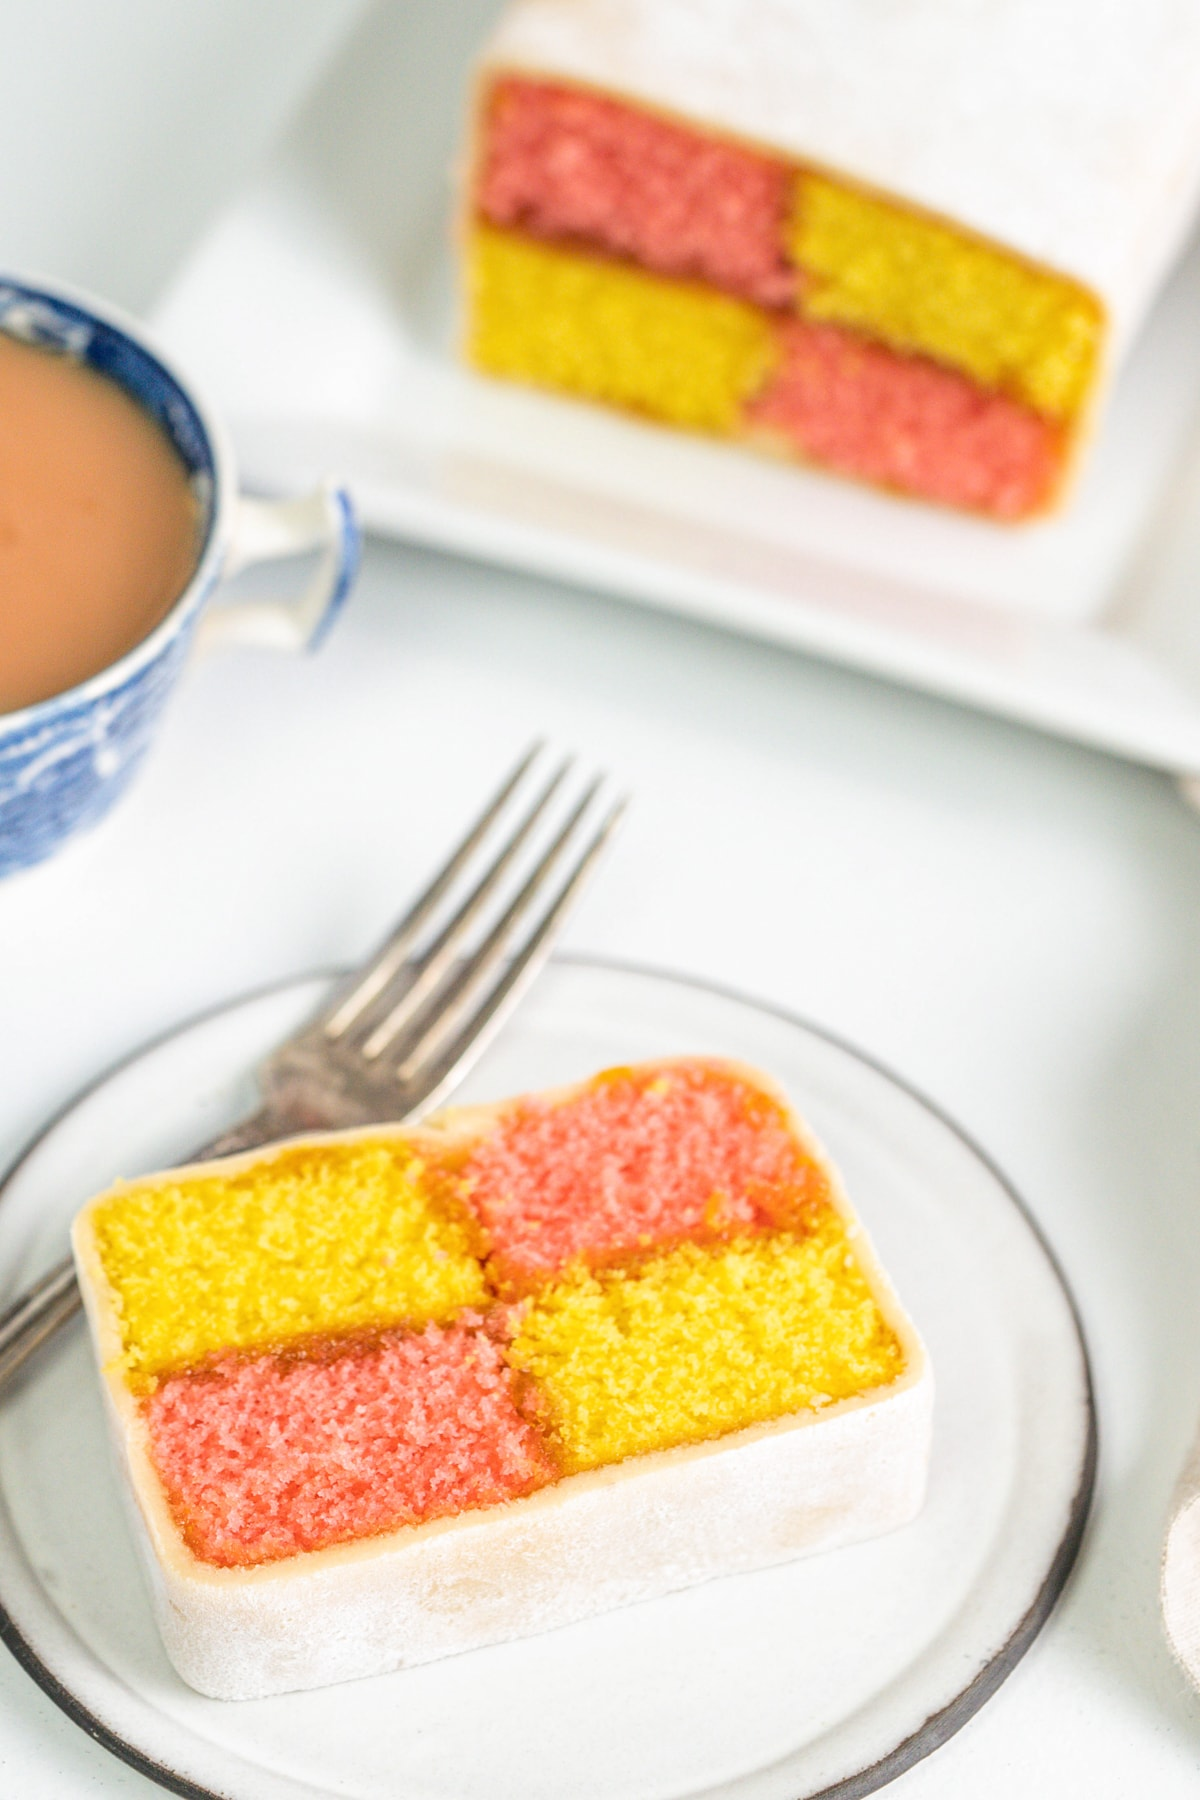 Slice of battenberg cake on a plate with a cup of tea and more battenberg in the background.